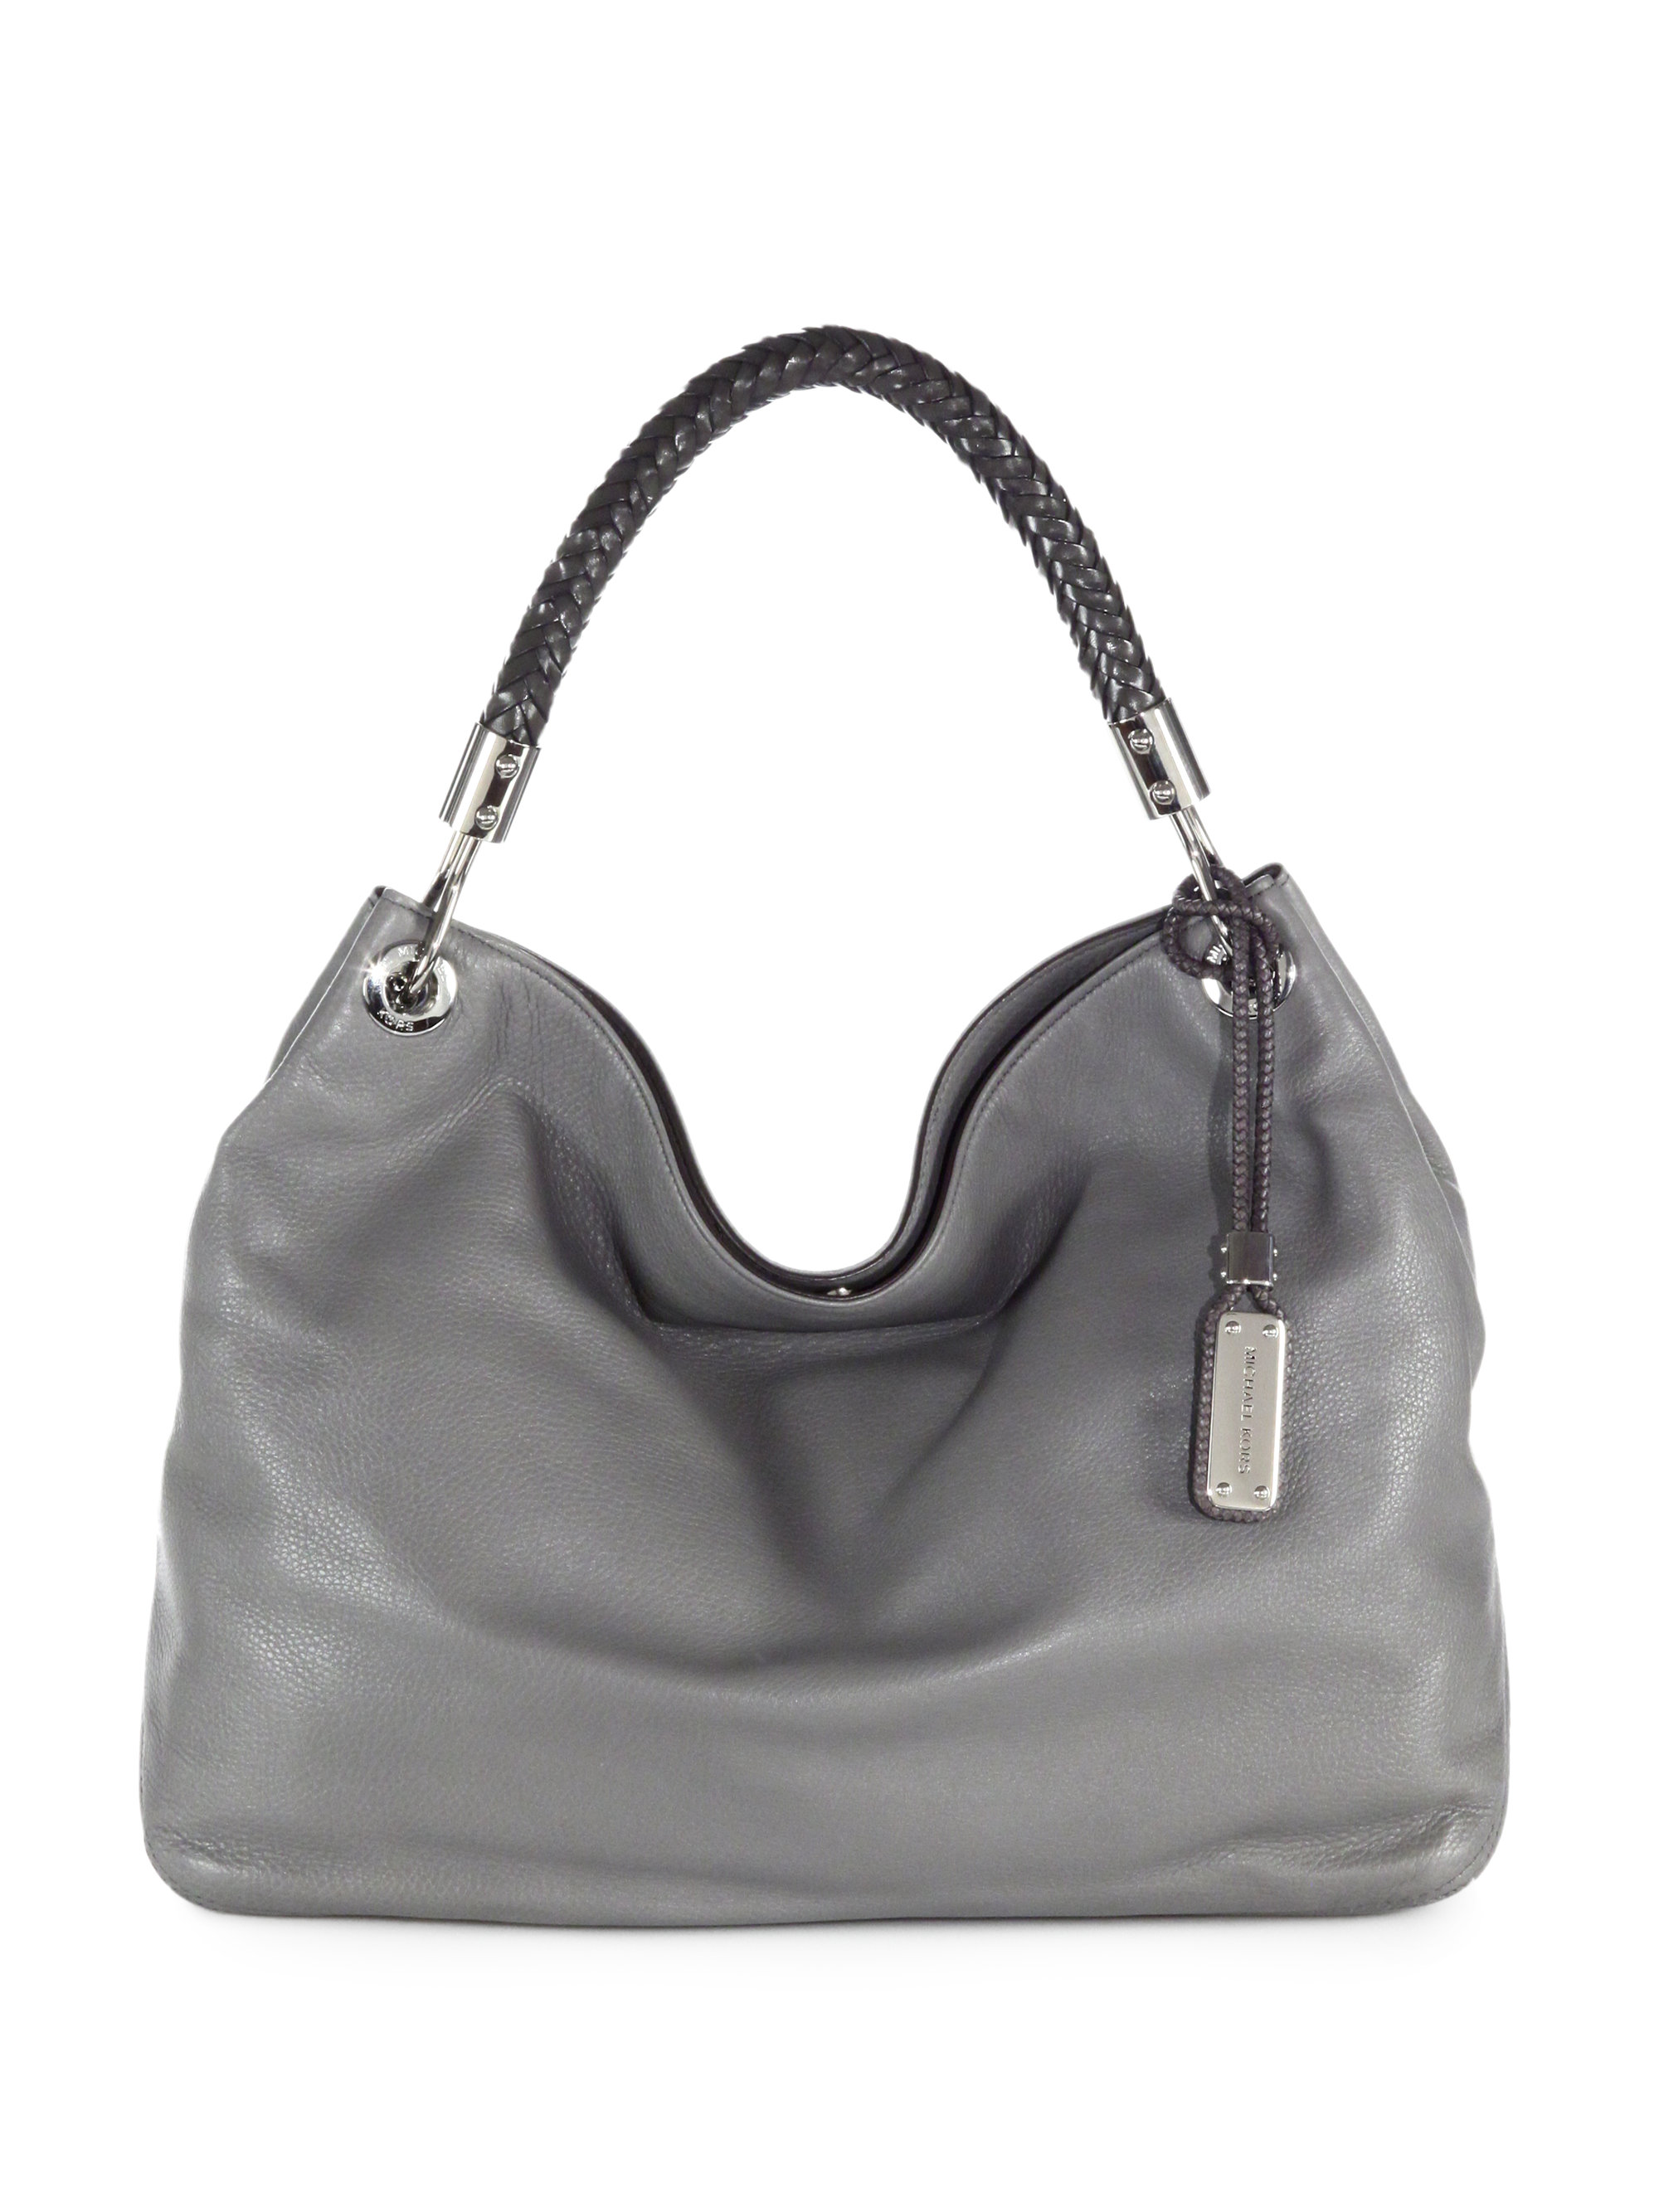 7cb17e5943e5 ... czech lyst michael kors skorpios leather shoulder bag in gray 8cc67  72b14